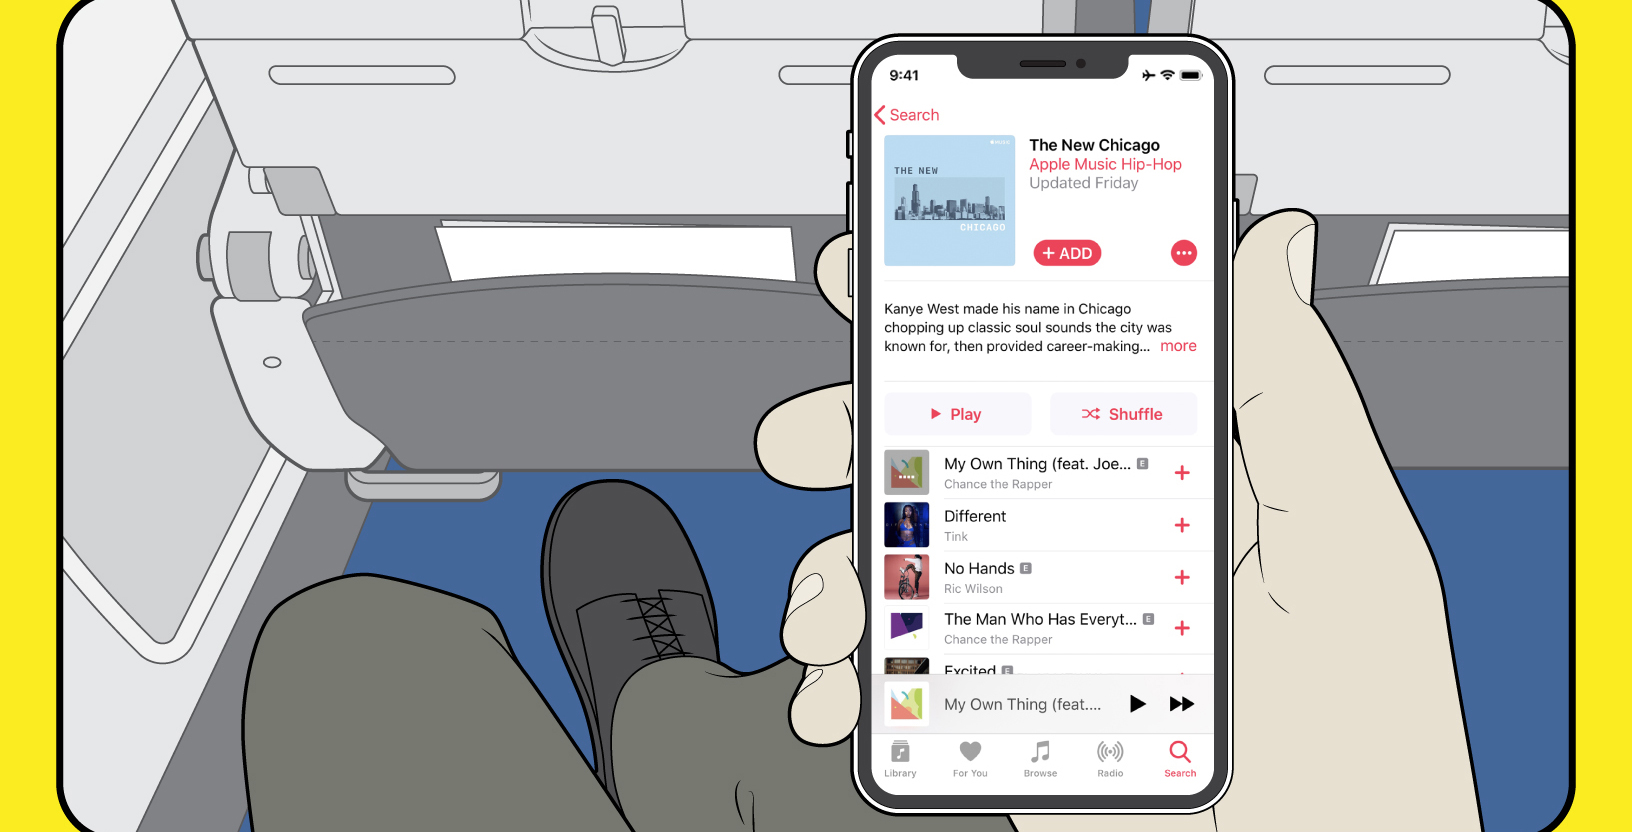 American Airlines will provide 'exclusive' inflight Apple Music access for free